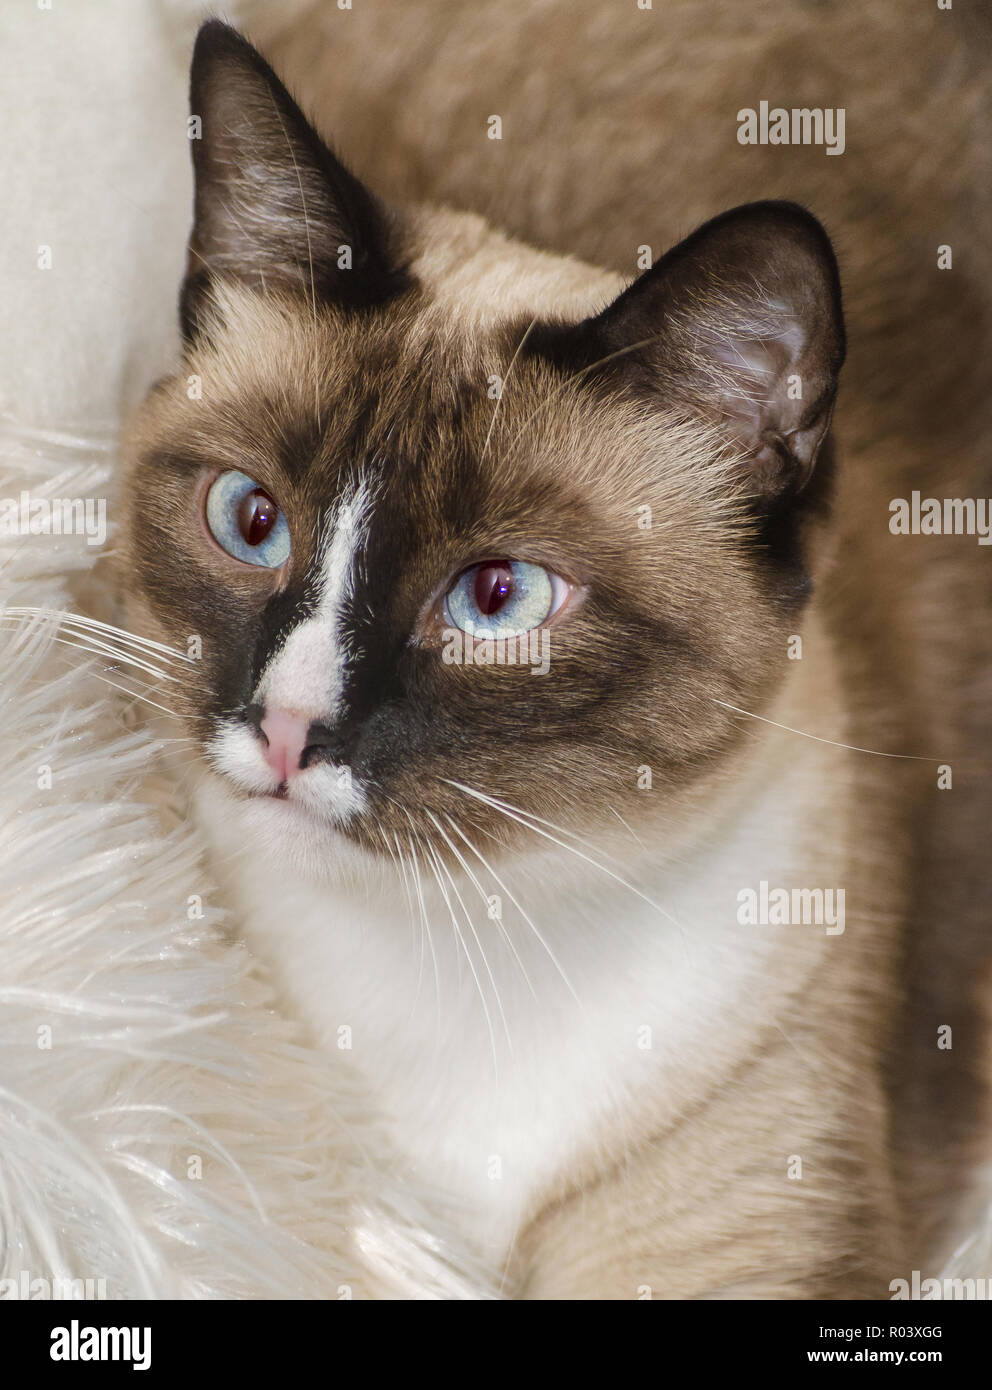 Twinkie, a two-year-old Siamese cat, is pictured, Oct. 30, 2015, in Coden, Alabama. - Stock Image